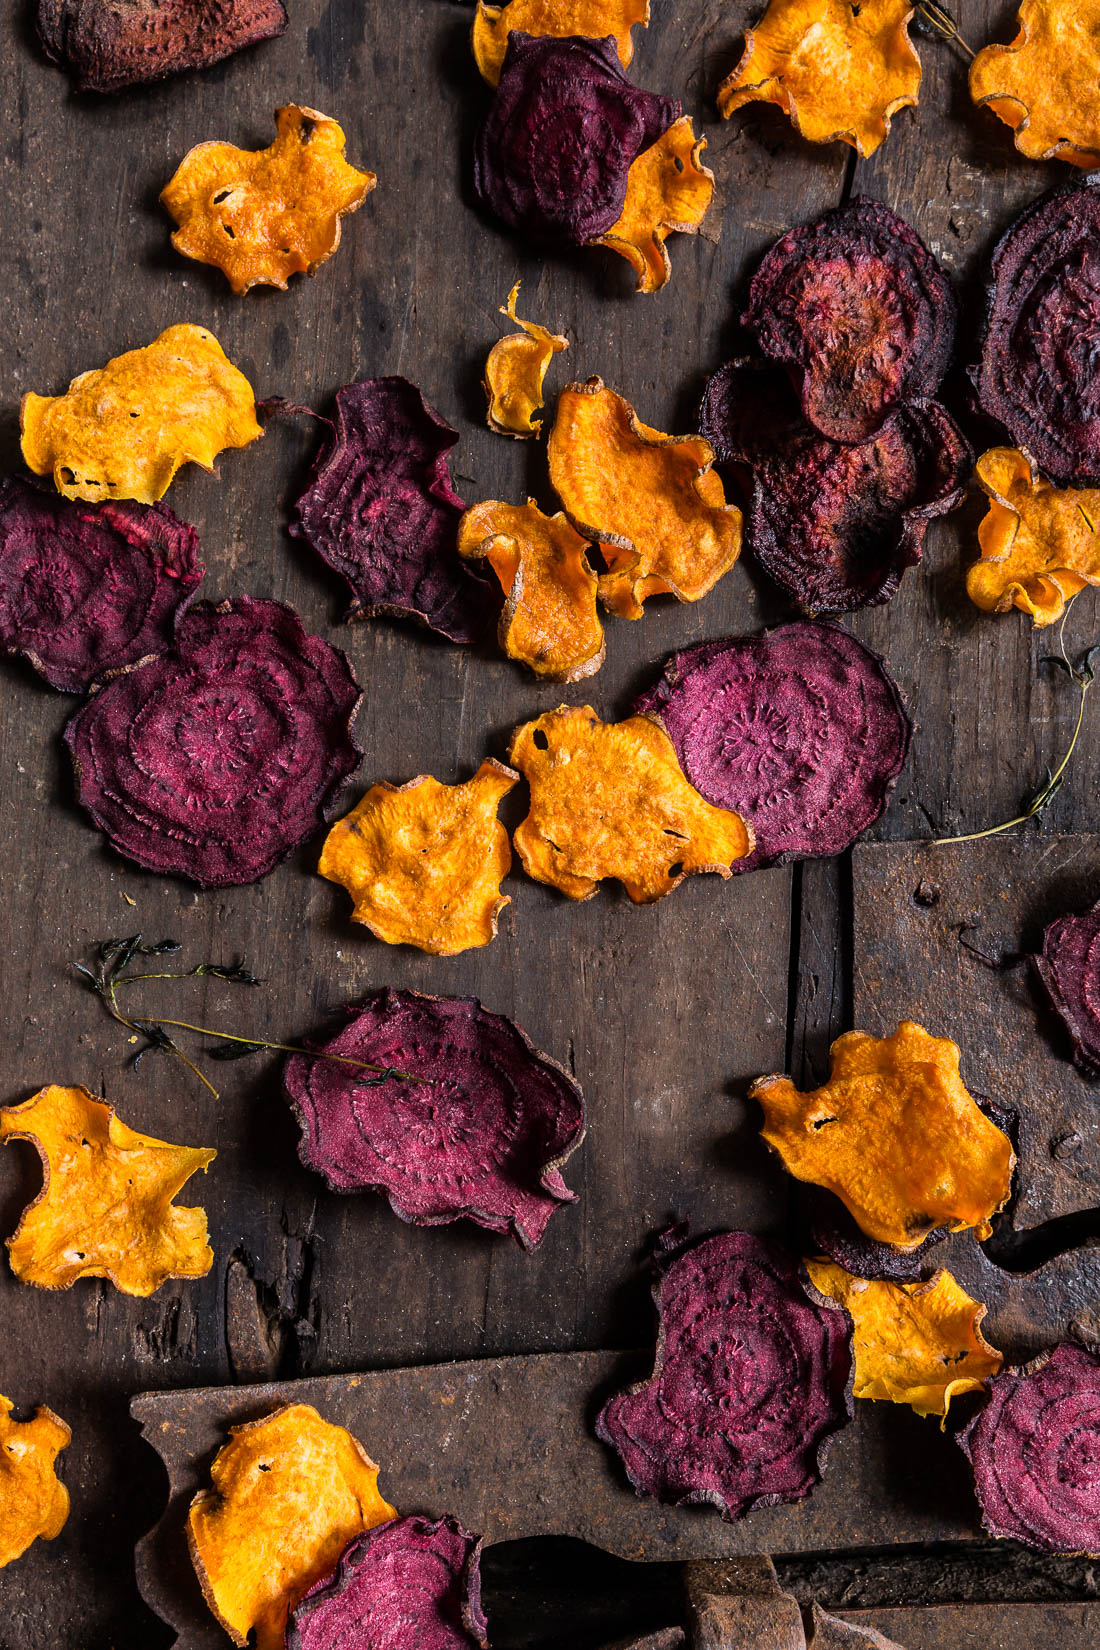 ricetta chips di barbabietola e patate dolci Hummus alla zucca con - pumpkin hummus recipe with beet and sweet potato chips